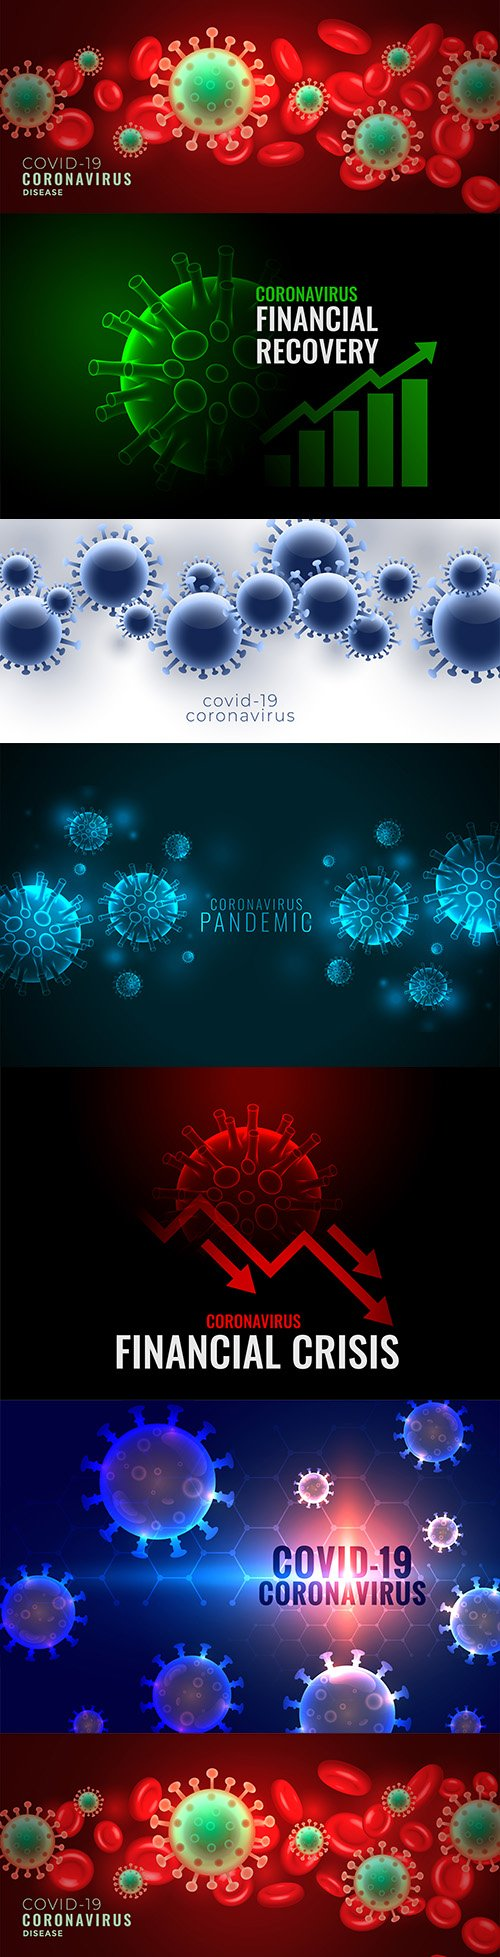 Coronavirus covid-19 pandemic banner with viral cells